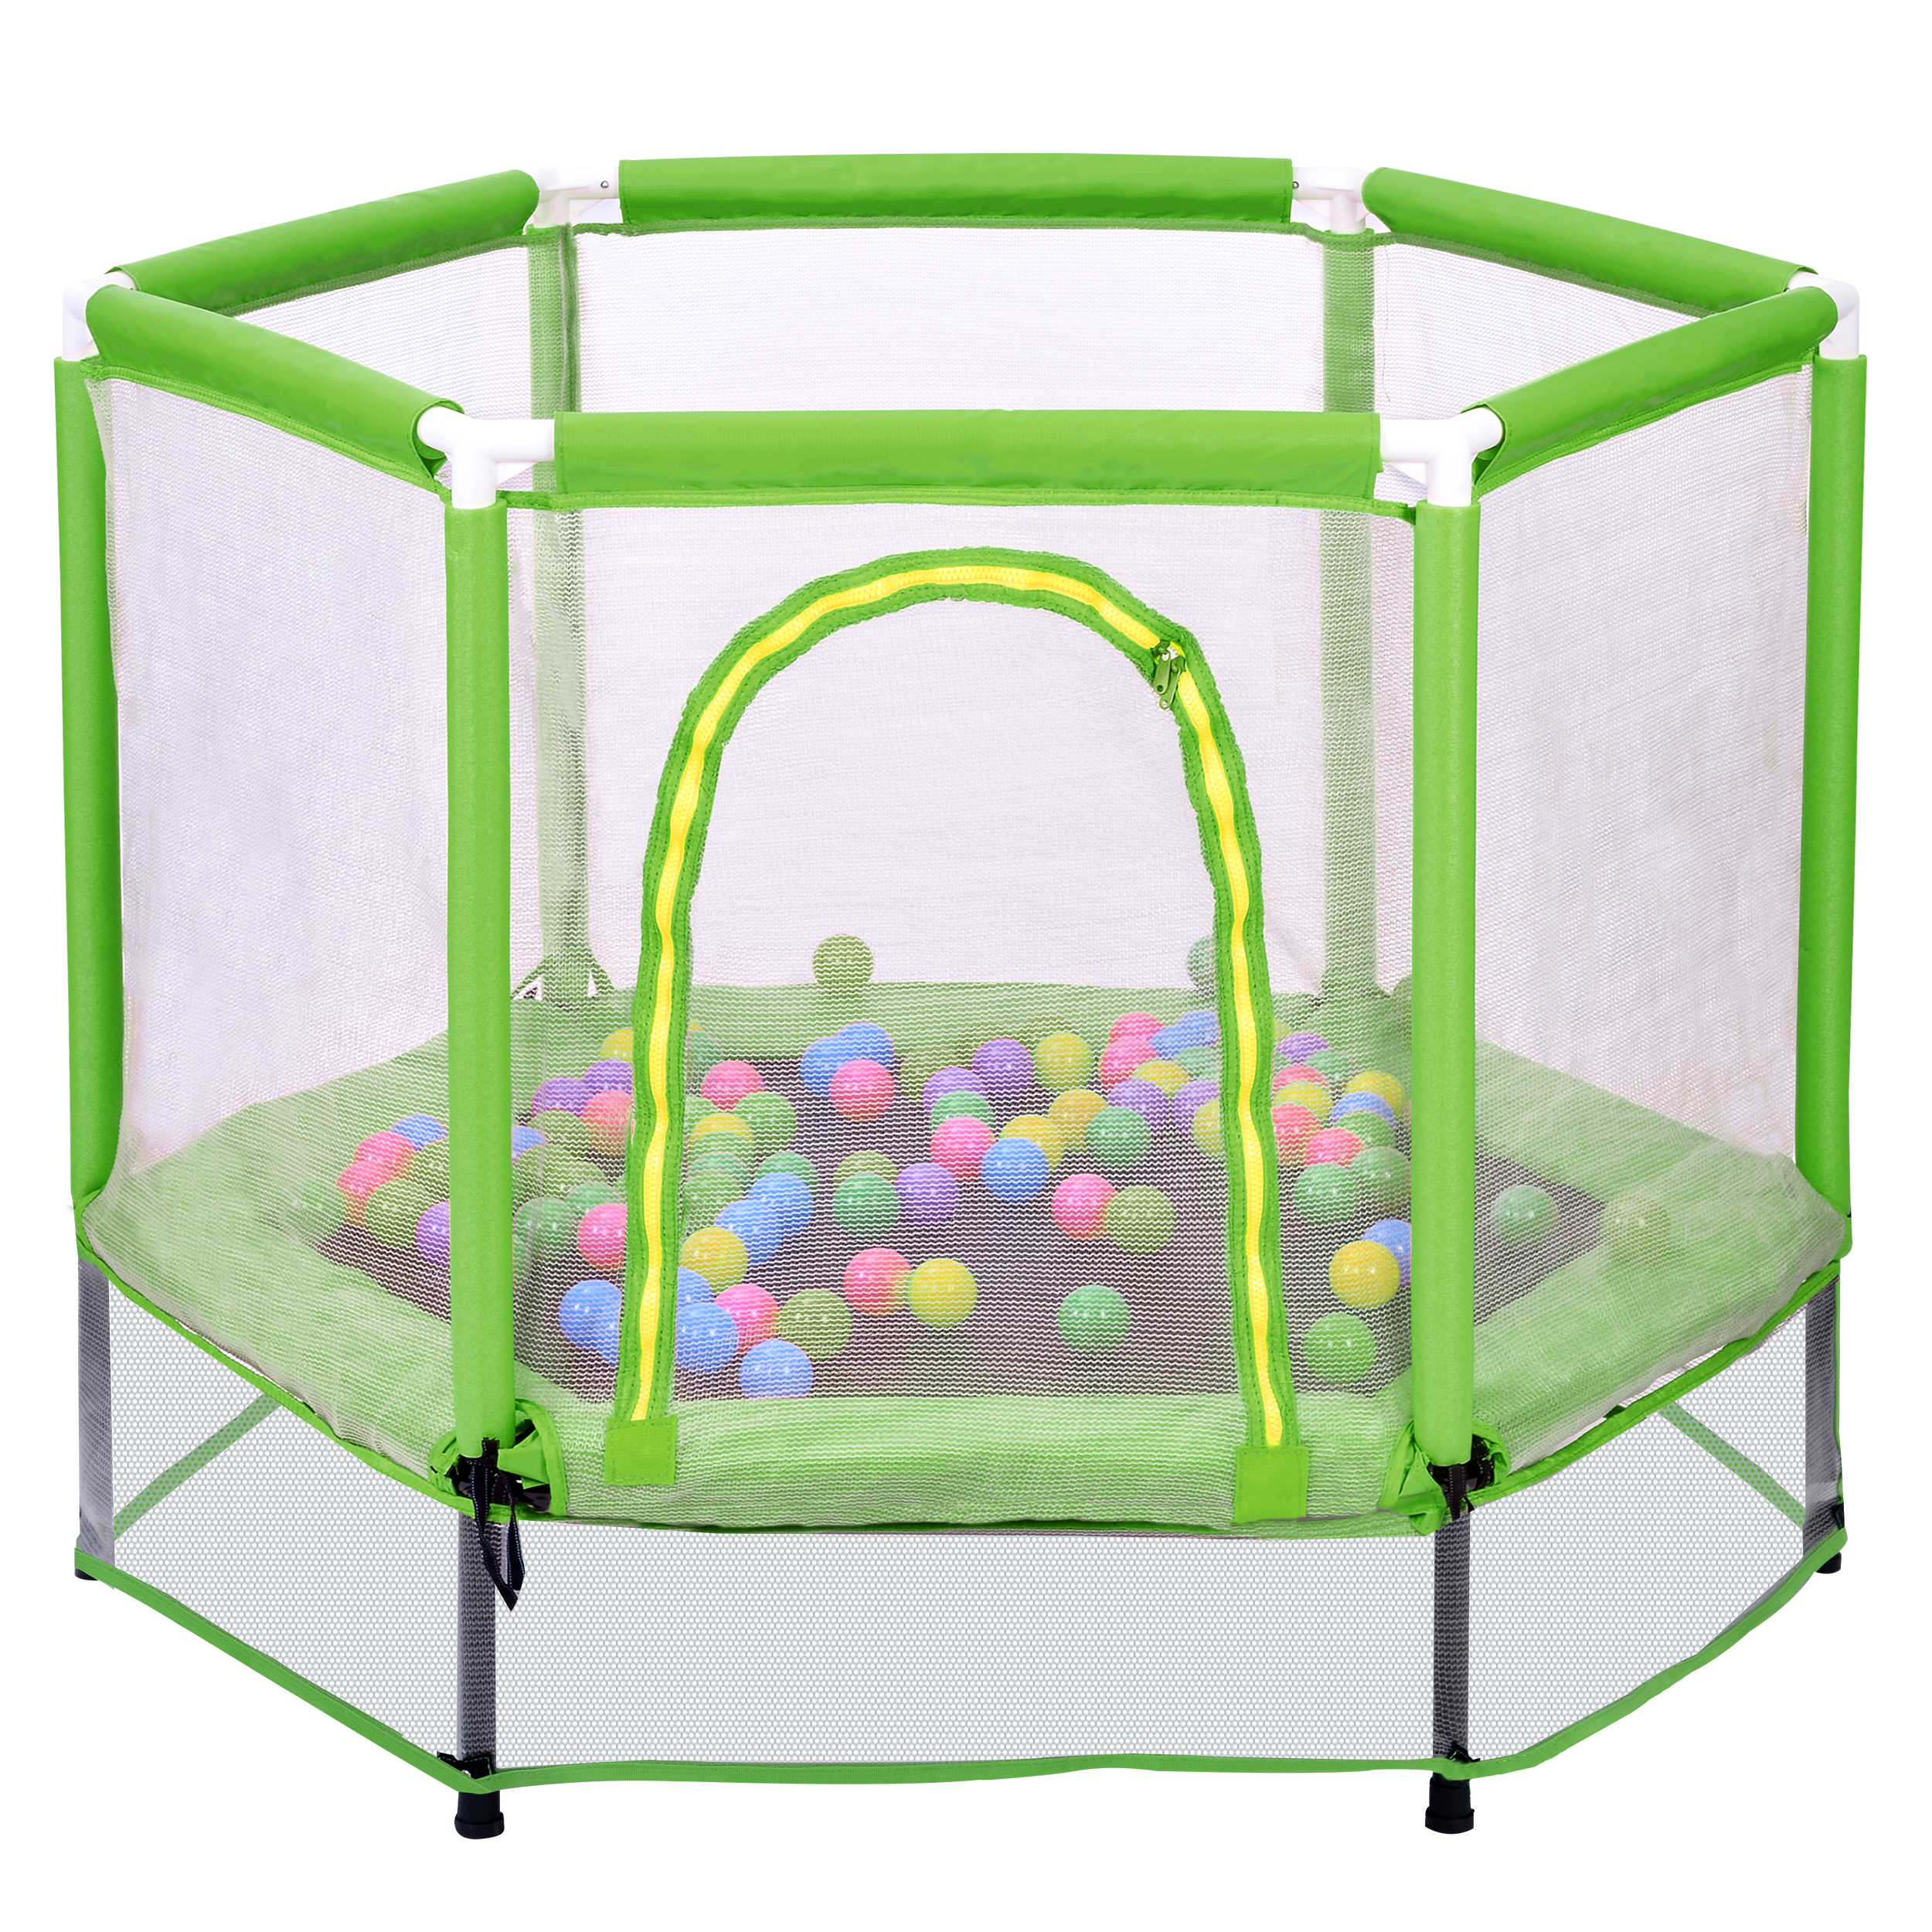 """[US Direct] 55"""" Toddlers Trampoline with Safety Enclosure Net and Balls, Indoor Outdoor Mini Trampoline for Kids"""